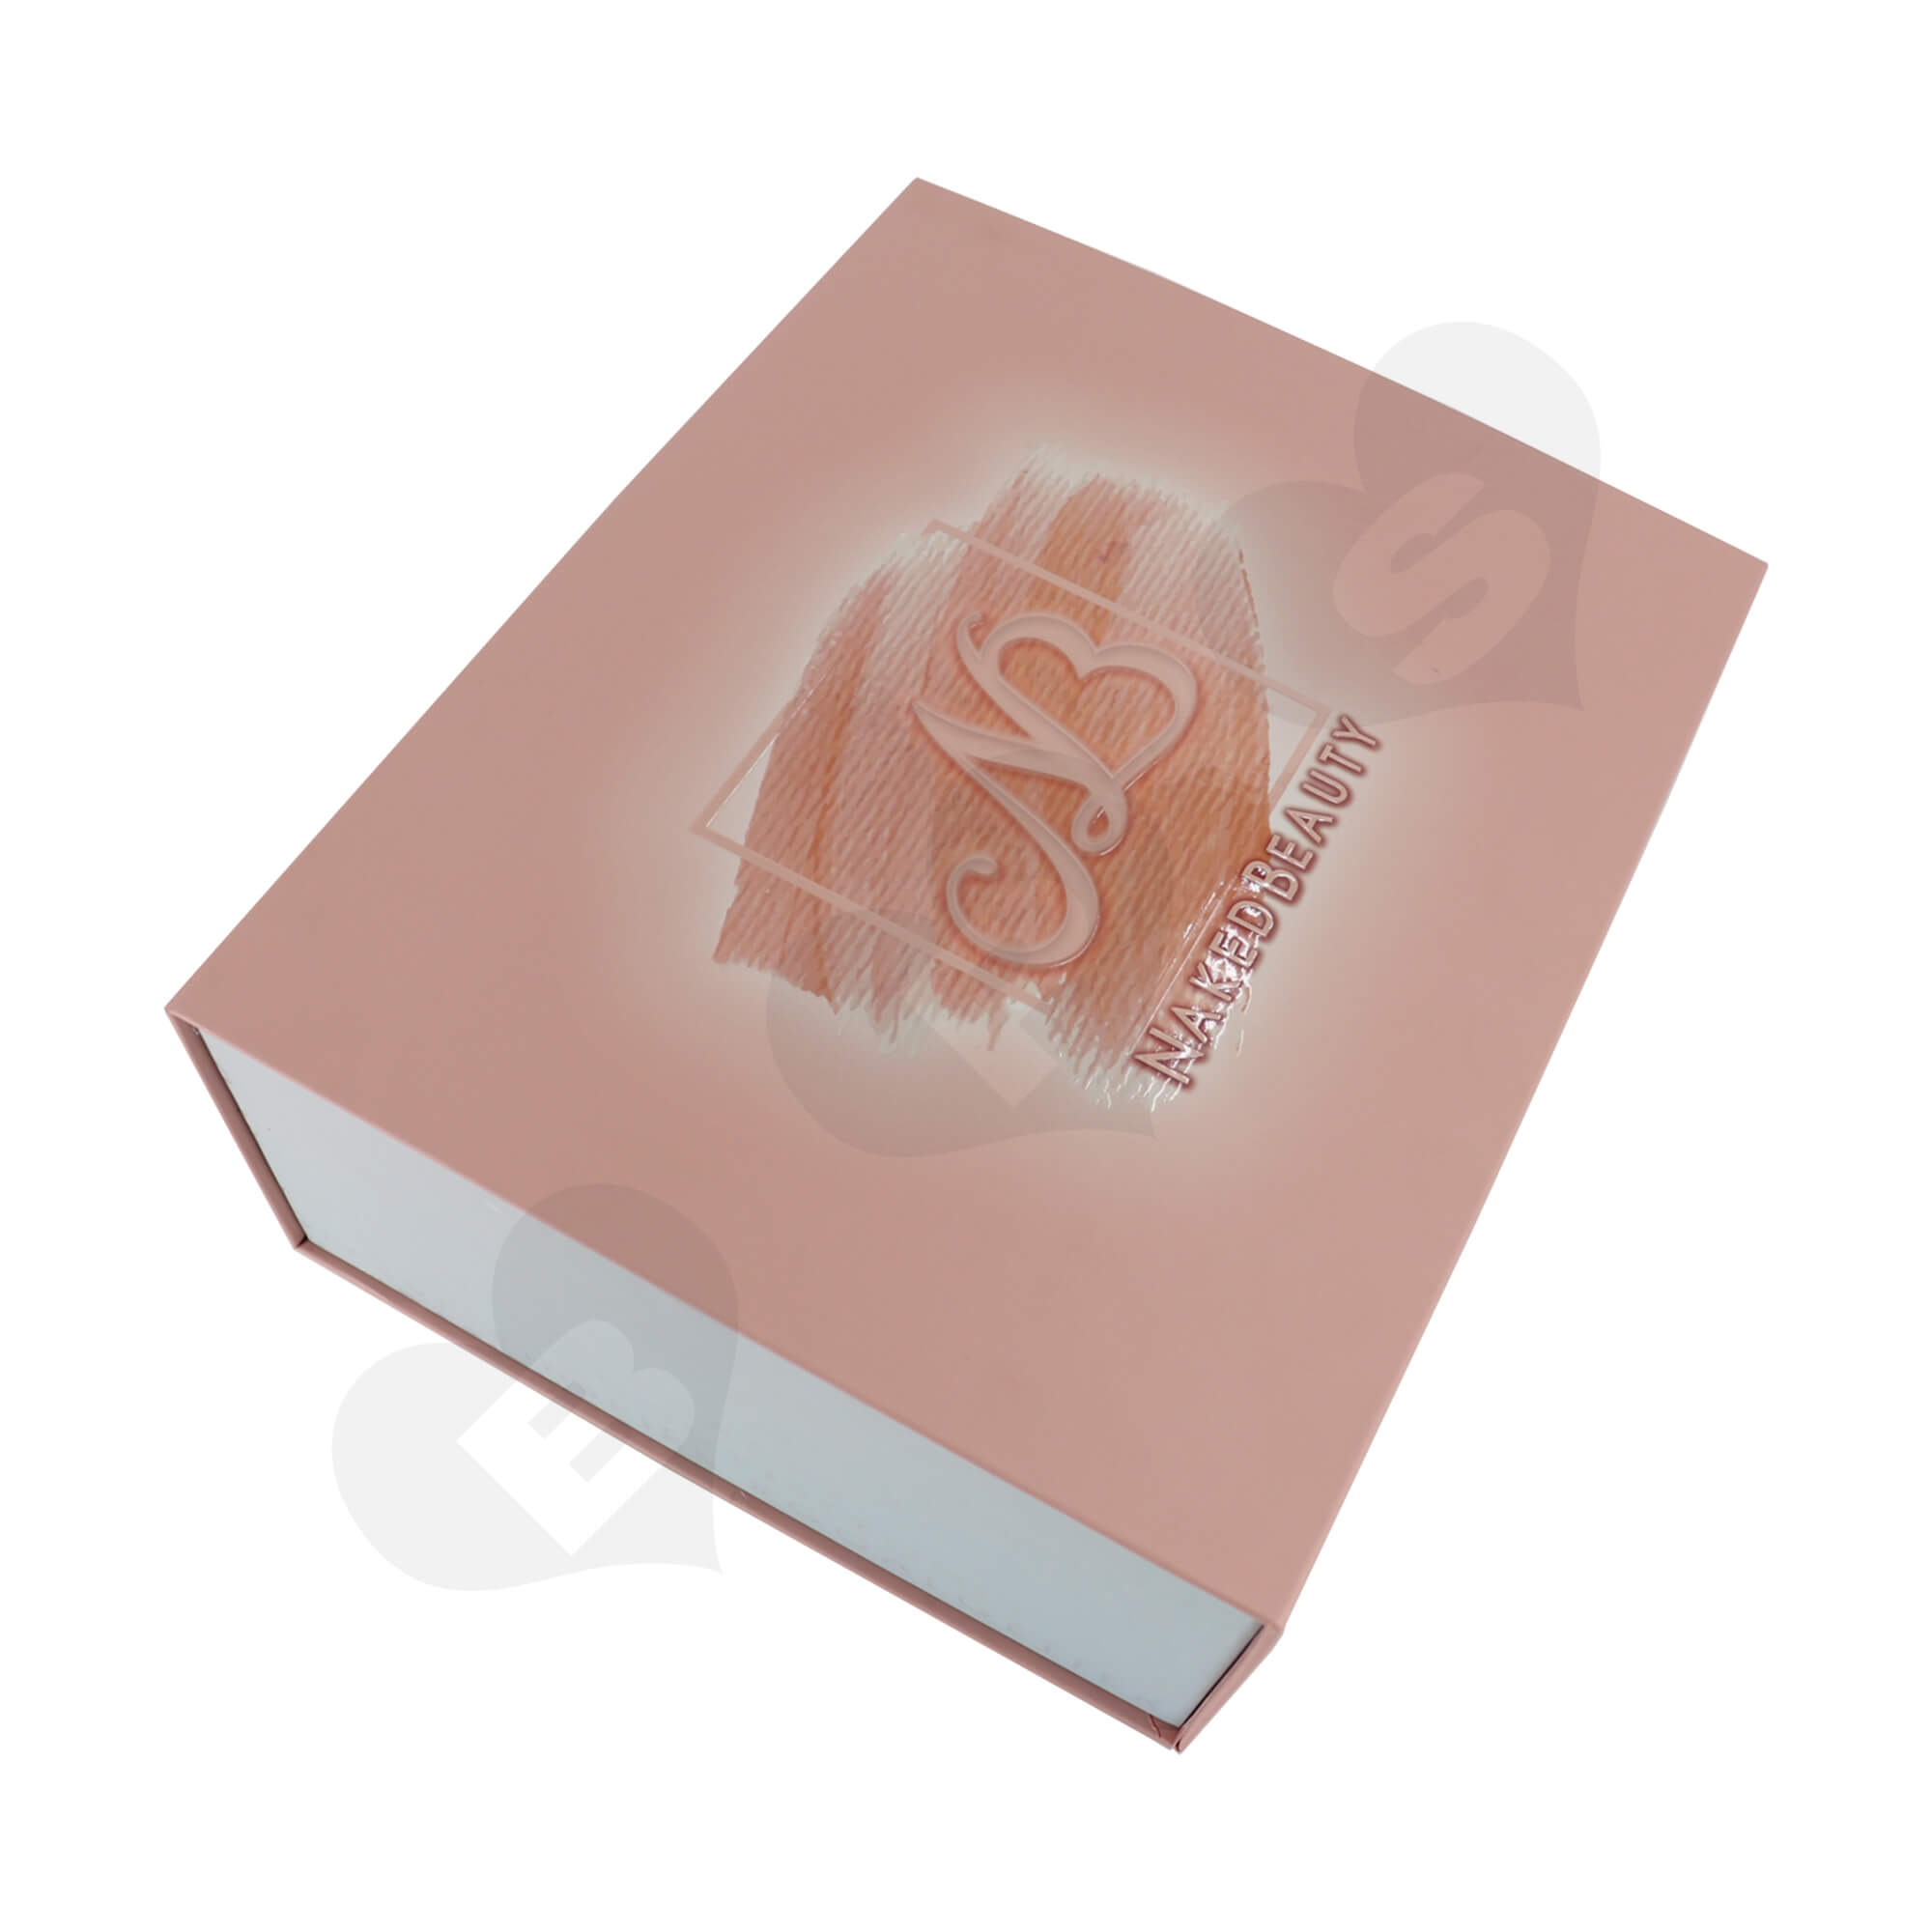 Luxury Cardboard Gift Box For Packing Cosmetic Makeup Kit Side View Two